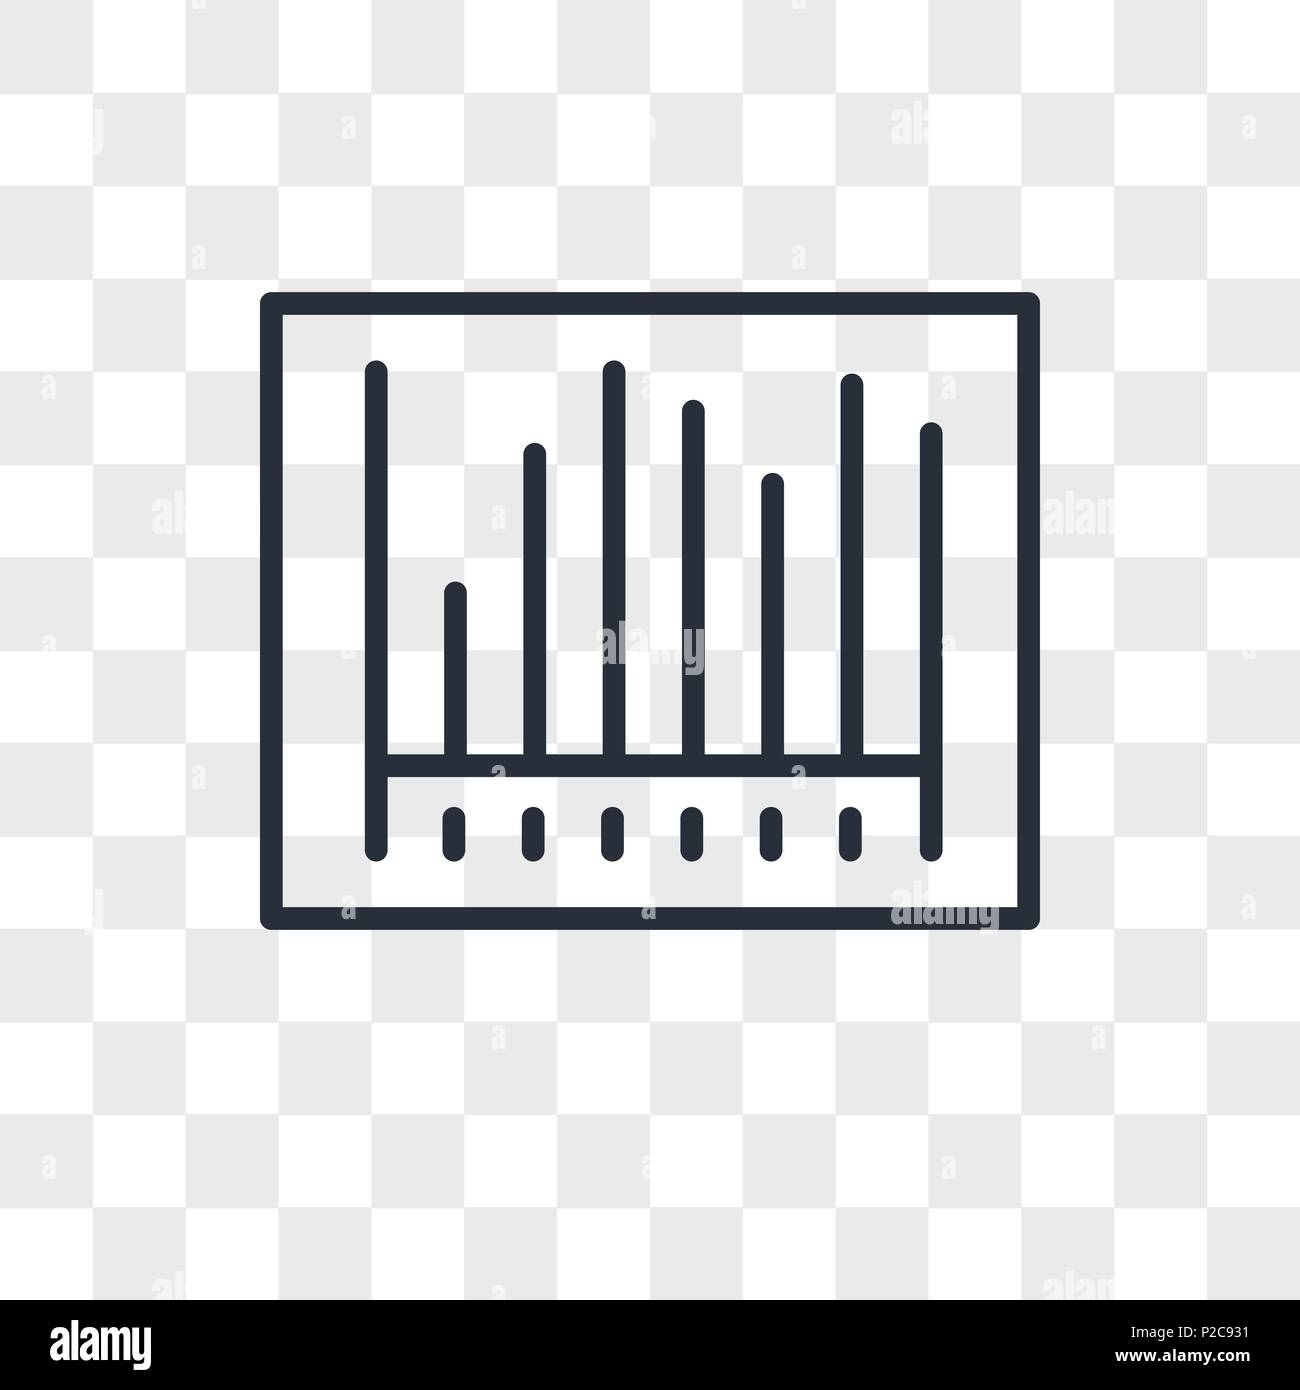 Barcode vector icon isolated on transparent background